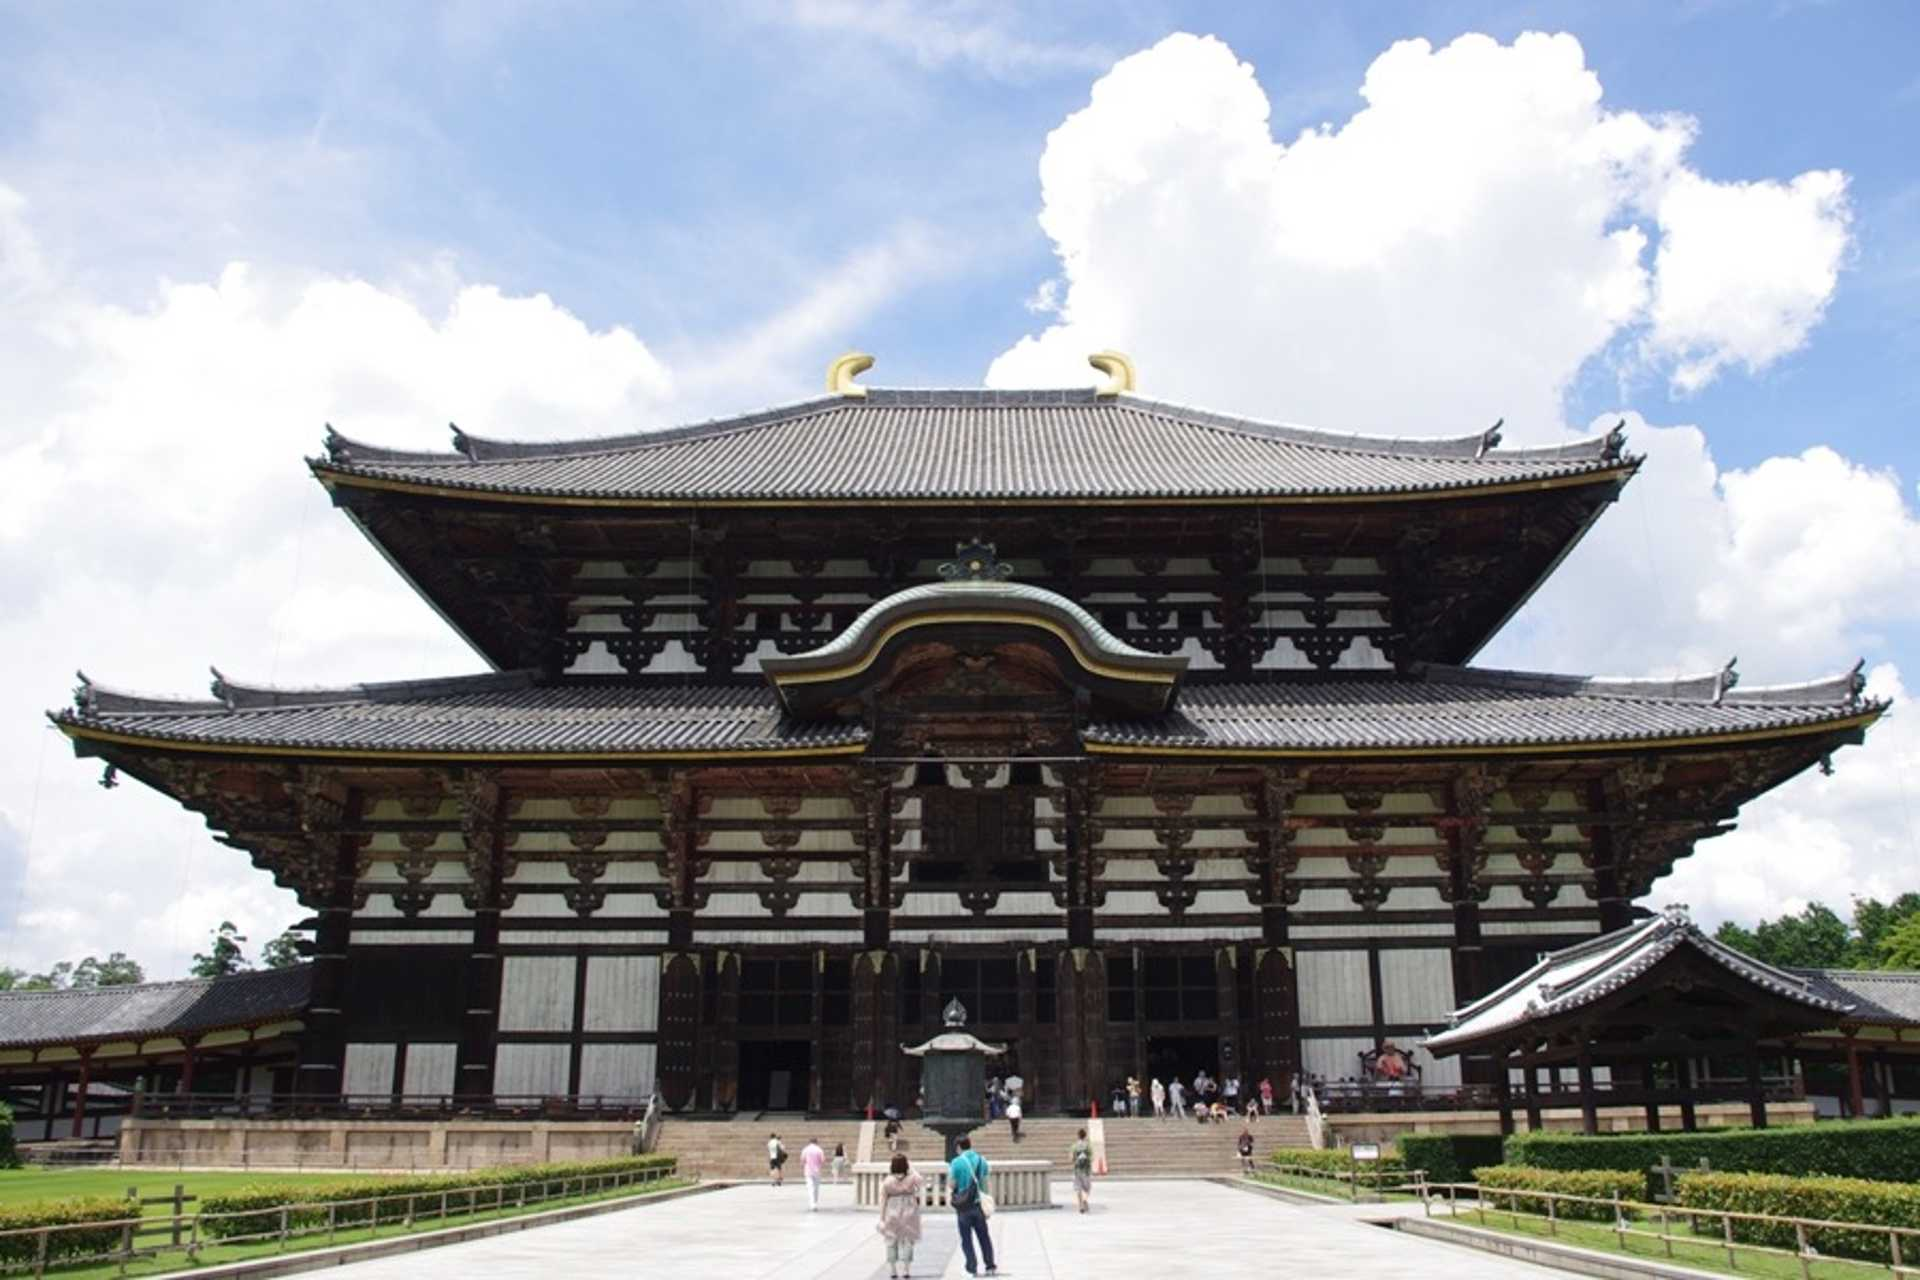 6 - A magnificent view of Todaiji Temple